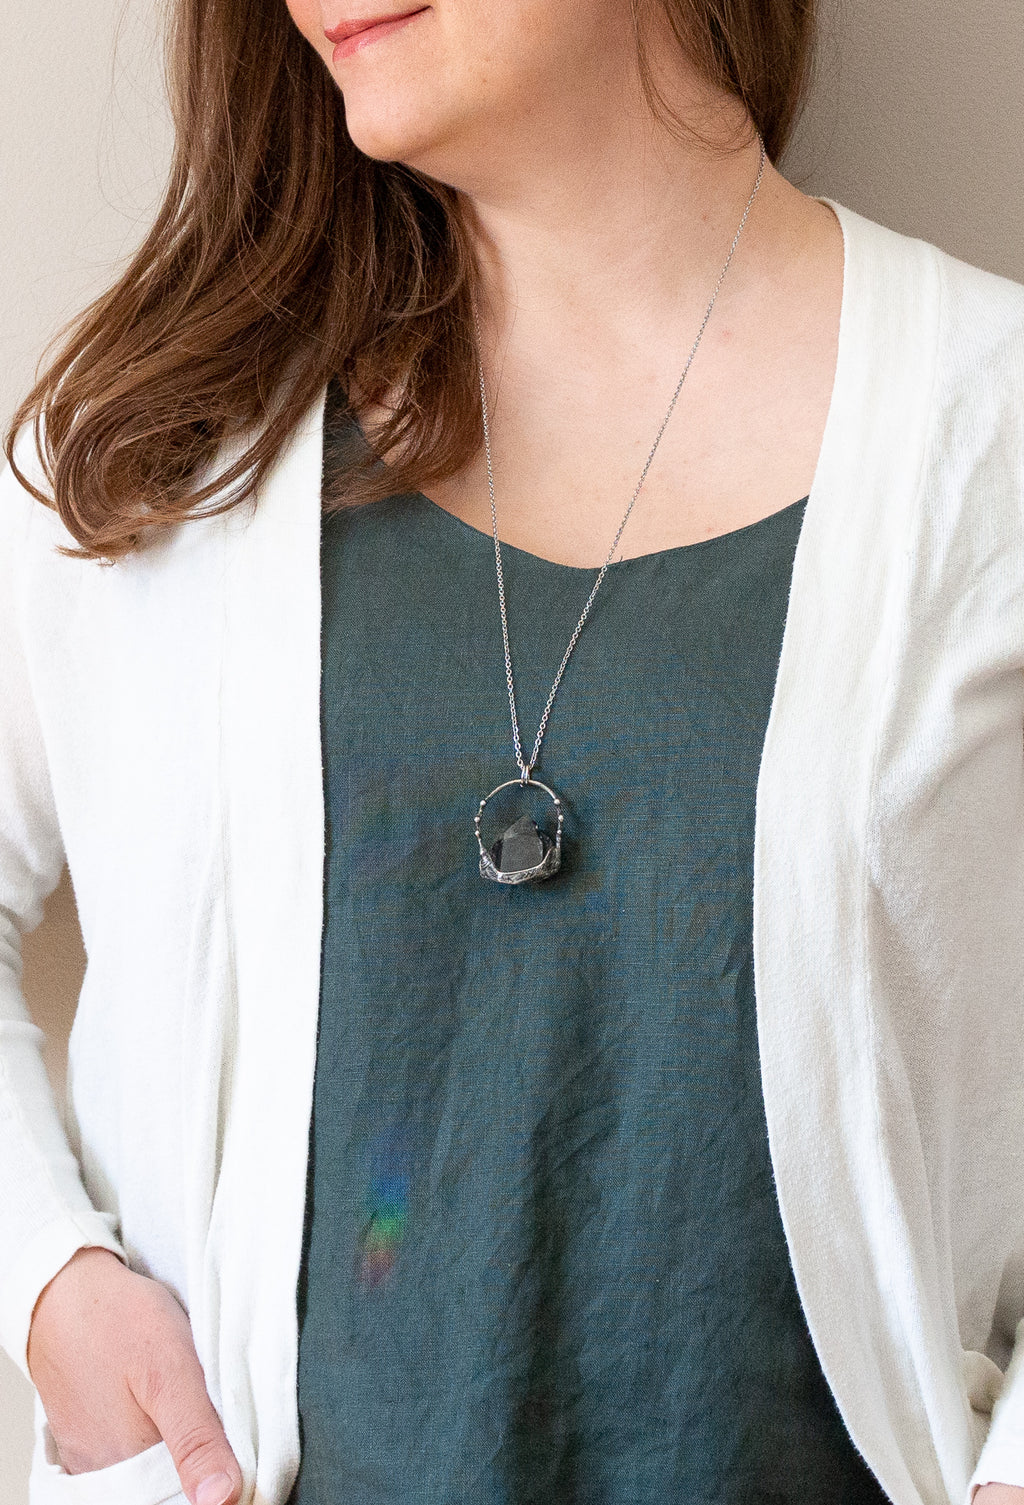 woman in blue top with green gemstone chlorite phantom crystal talisman necklace